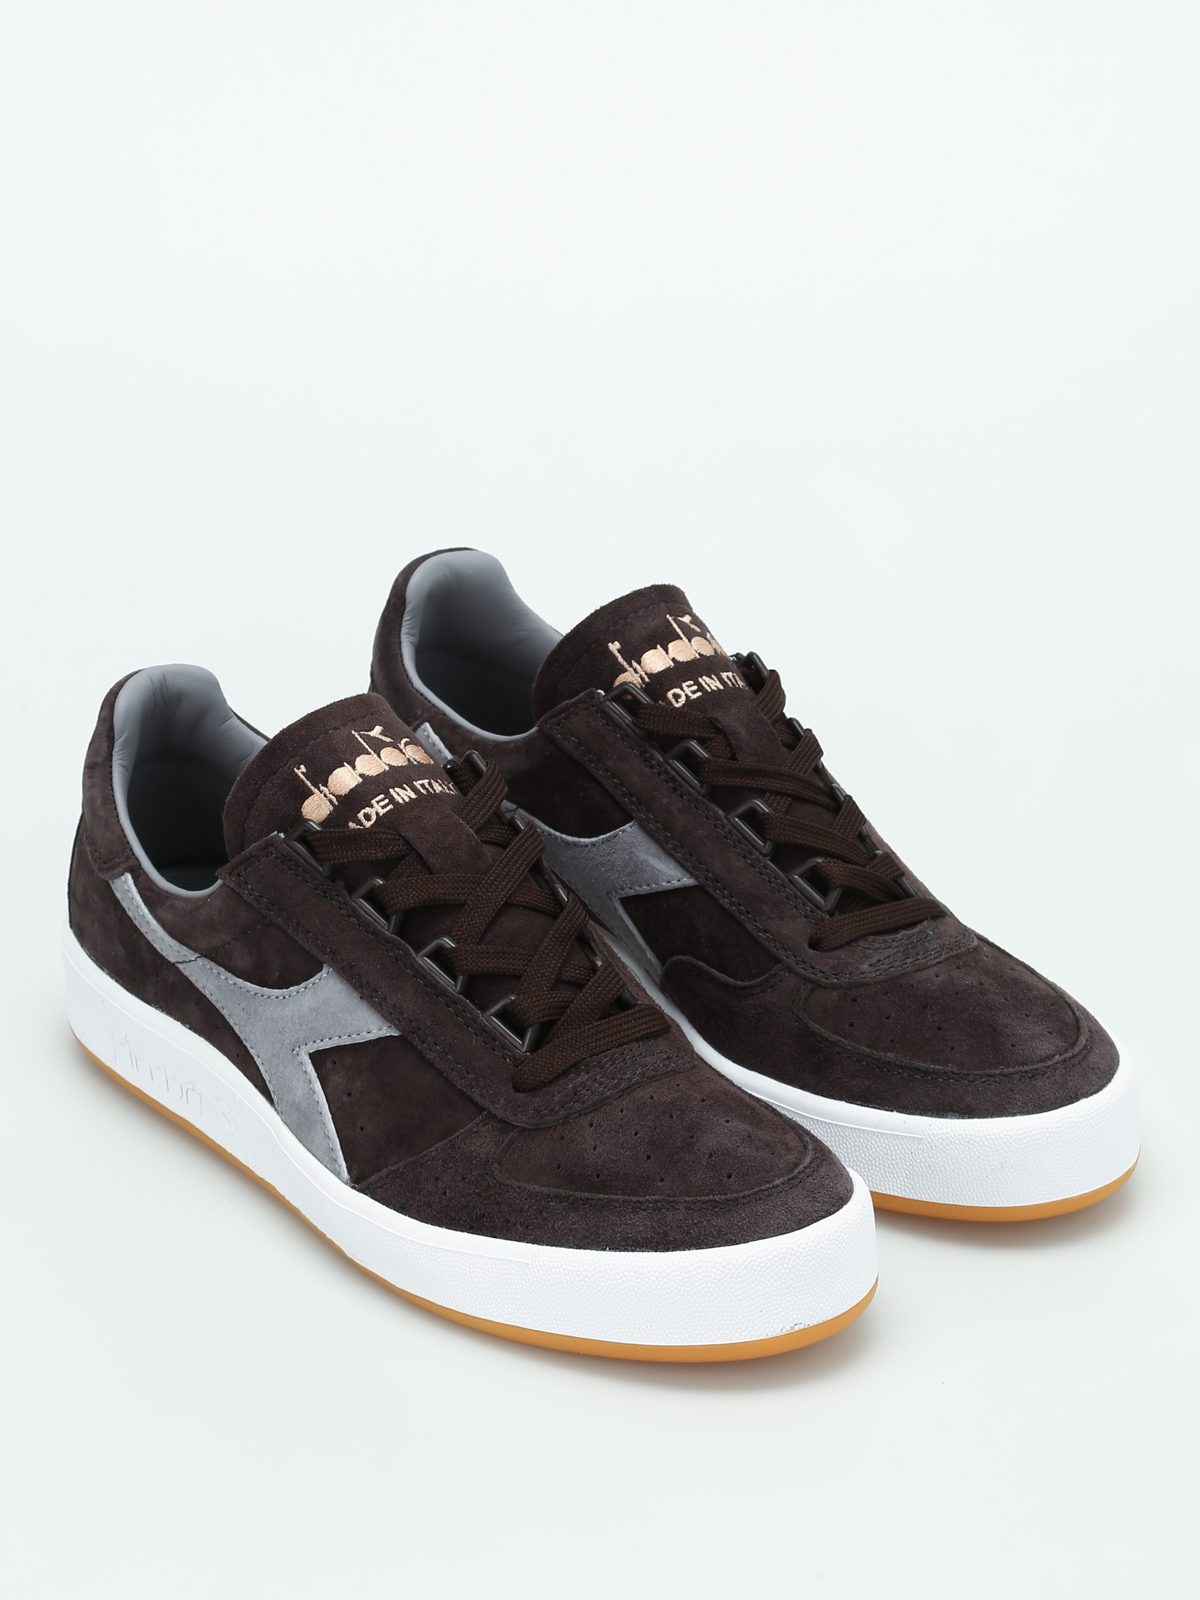 Diadora B. Elite Italia Suede Brown After Dark Uomo Sneakers Basse